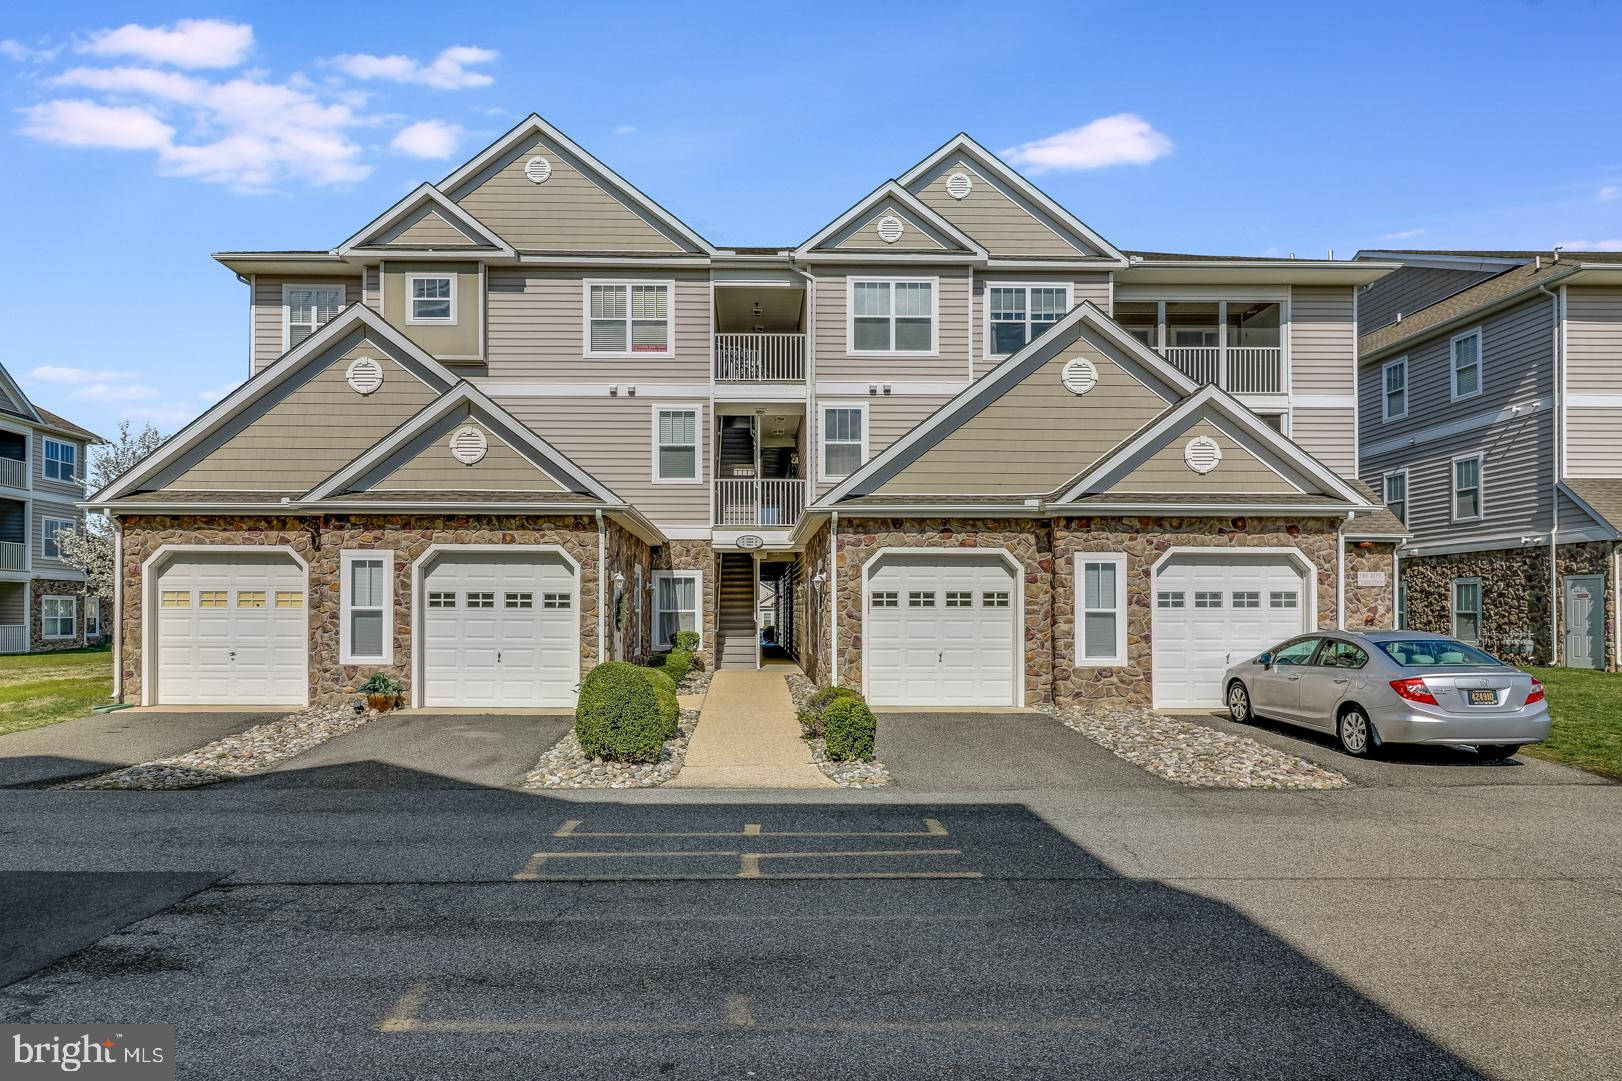 MOVE-IN-READY 2 bed/2 bath condo overlooking the pool & clubhouse in Hearthstone Manor. This unit bo